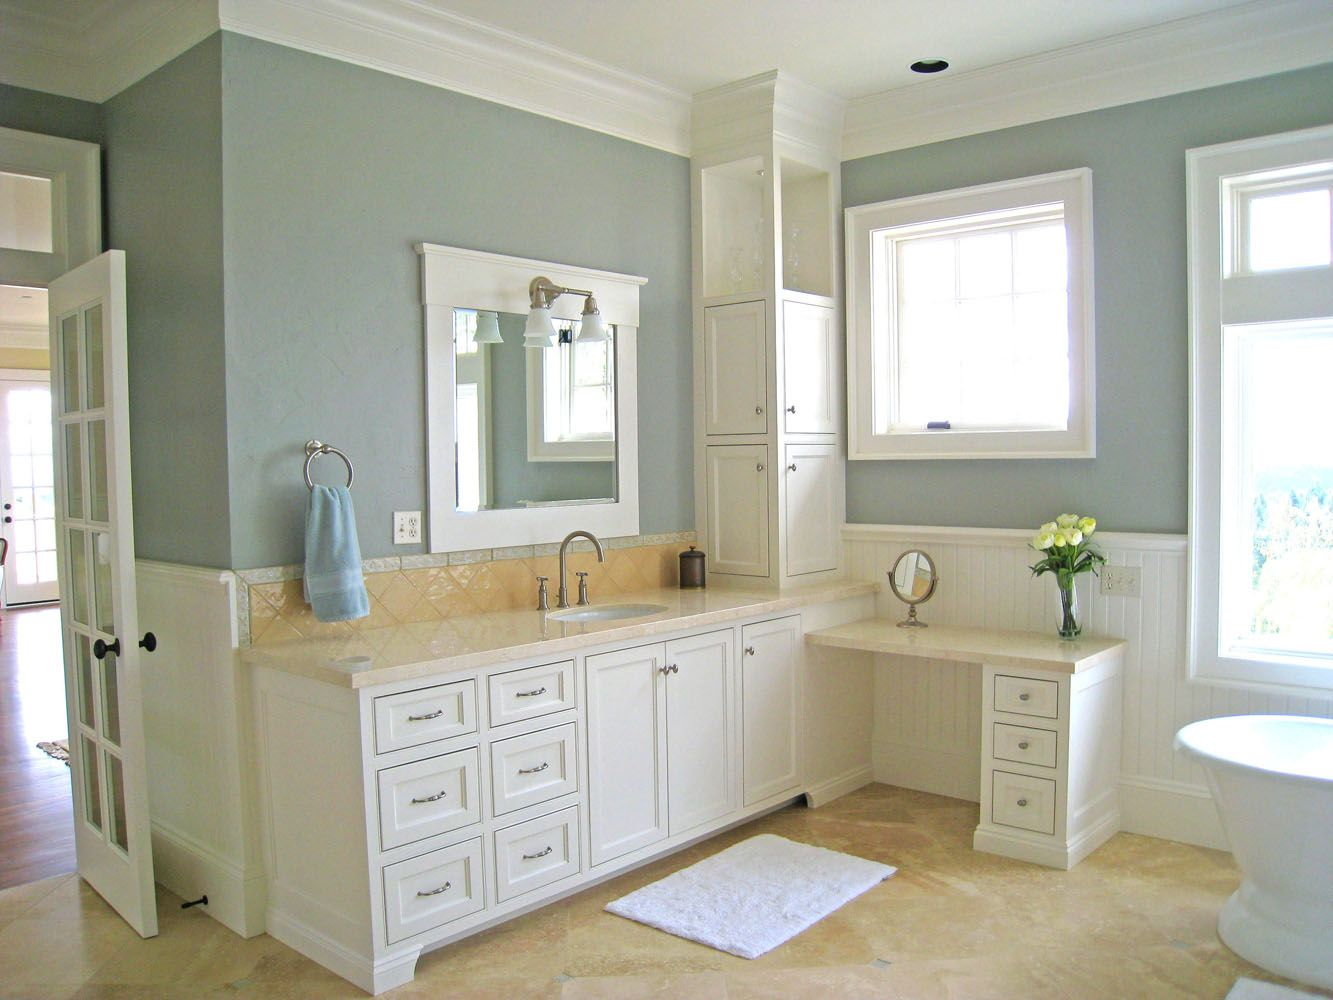 Bathroom paint ideas blue - Light And Airy Bathroom Painting Ideas Ideas Interactive Bathroom Design Ideas With White